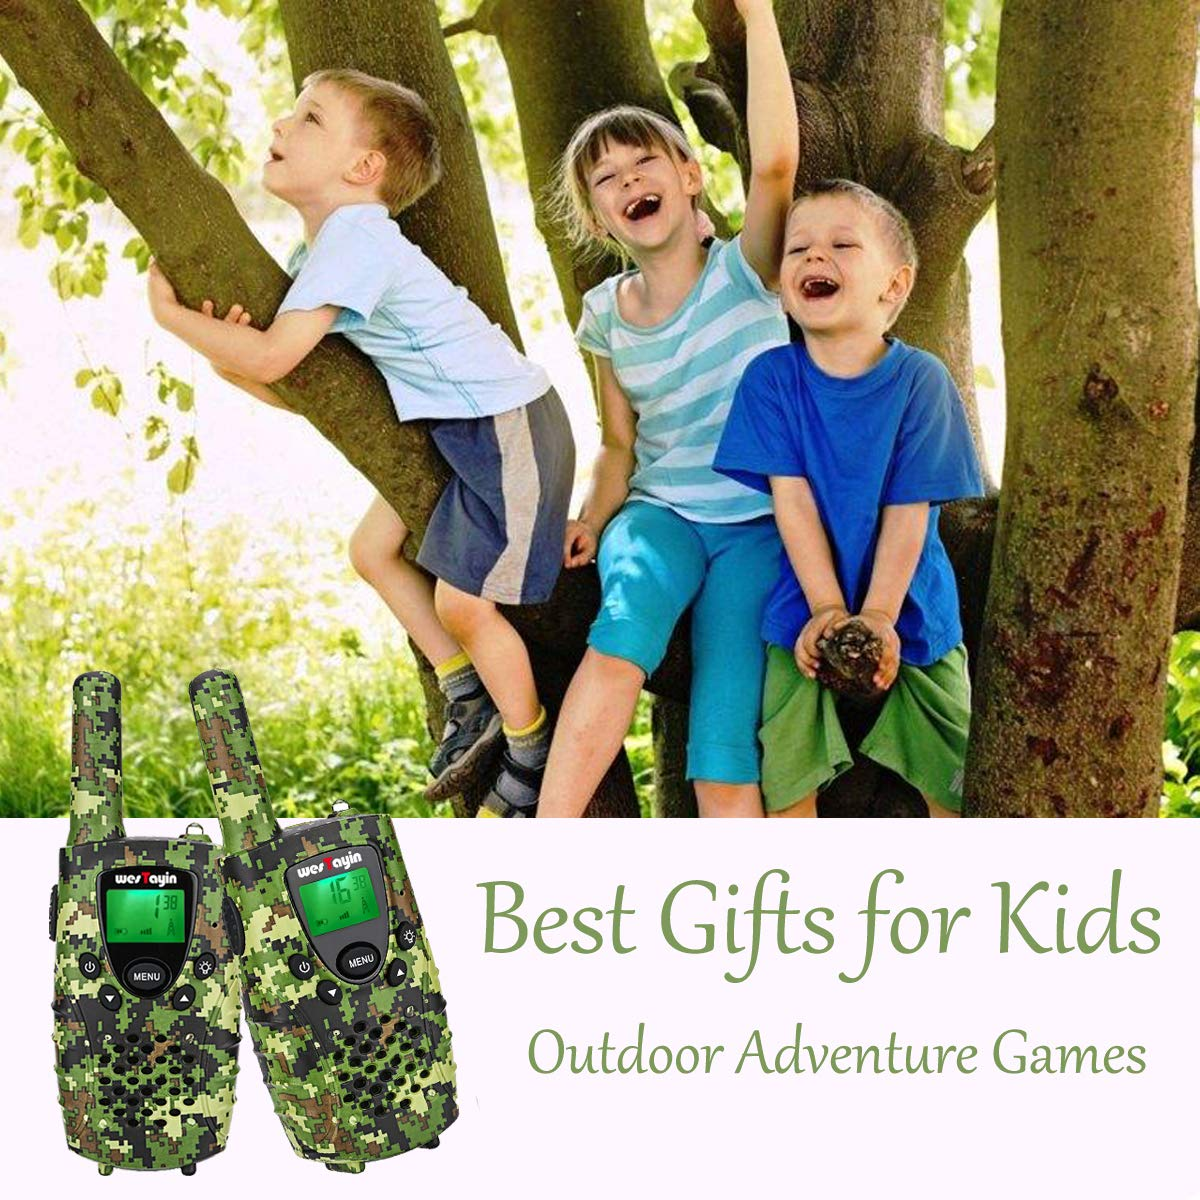 WES TAYIN Rechargeable Walkie Talkies for Kids, 4 Miles Kids Walkie Talkies with VOX Hands Free and LED Flashlight, Power Saving Two Way Radios Toys, Holiday Birthday for Kids by WES TAYIN (Image #6)